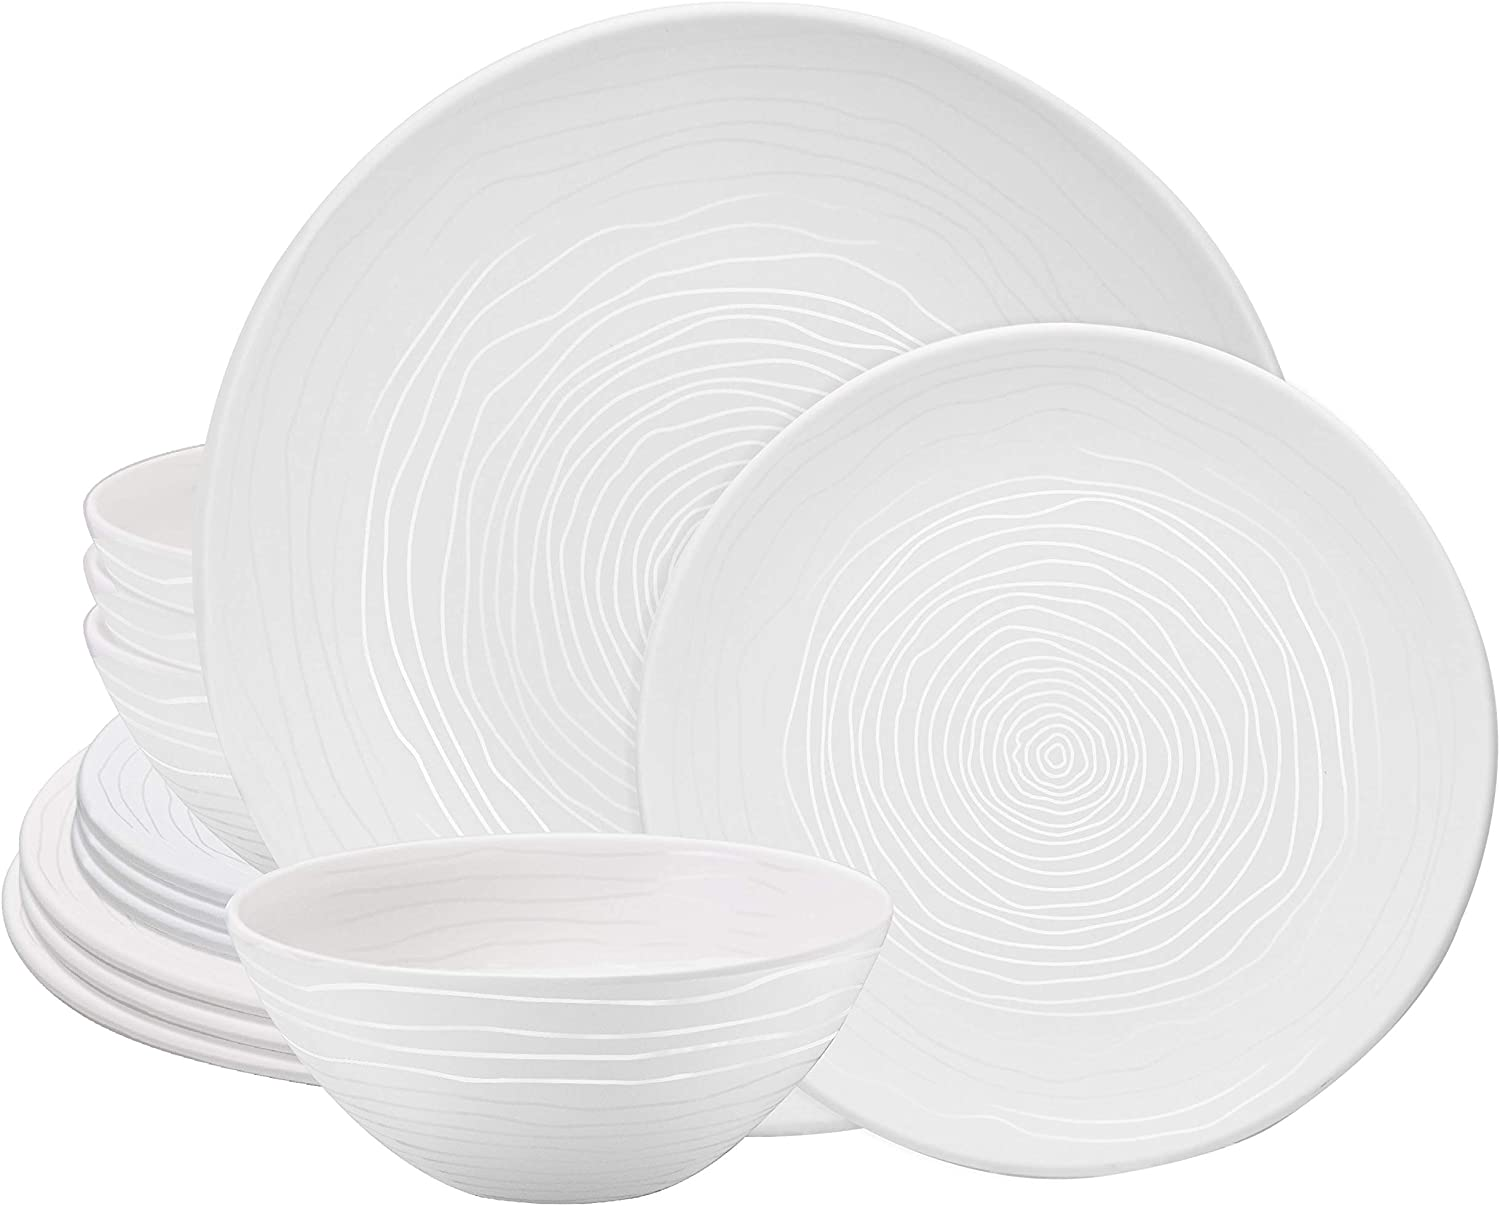 bzyoo BPA-Free Dishwasher Safe 100% Melamine Lightweight Plate & Bowl Set Best for Indoor and Outdoor Party Environmental Friendly (12 PCS Dinnerware set, Service for 4, Organica White)